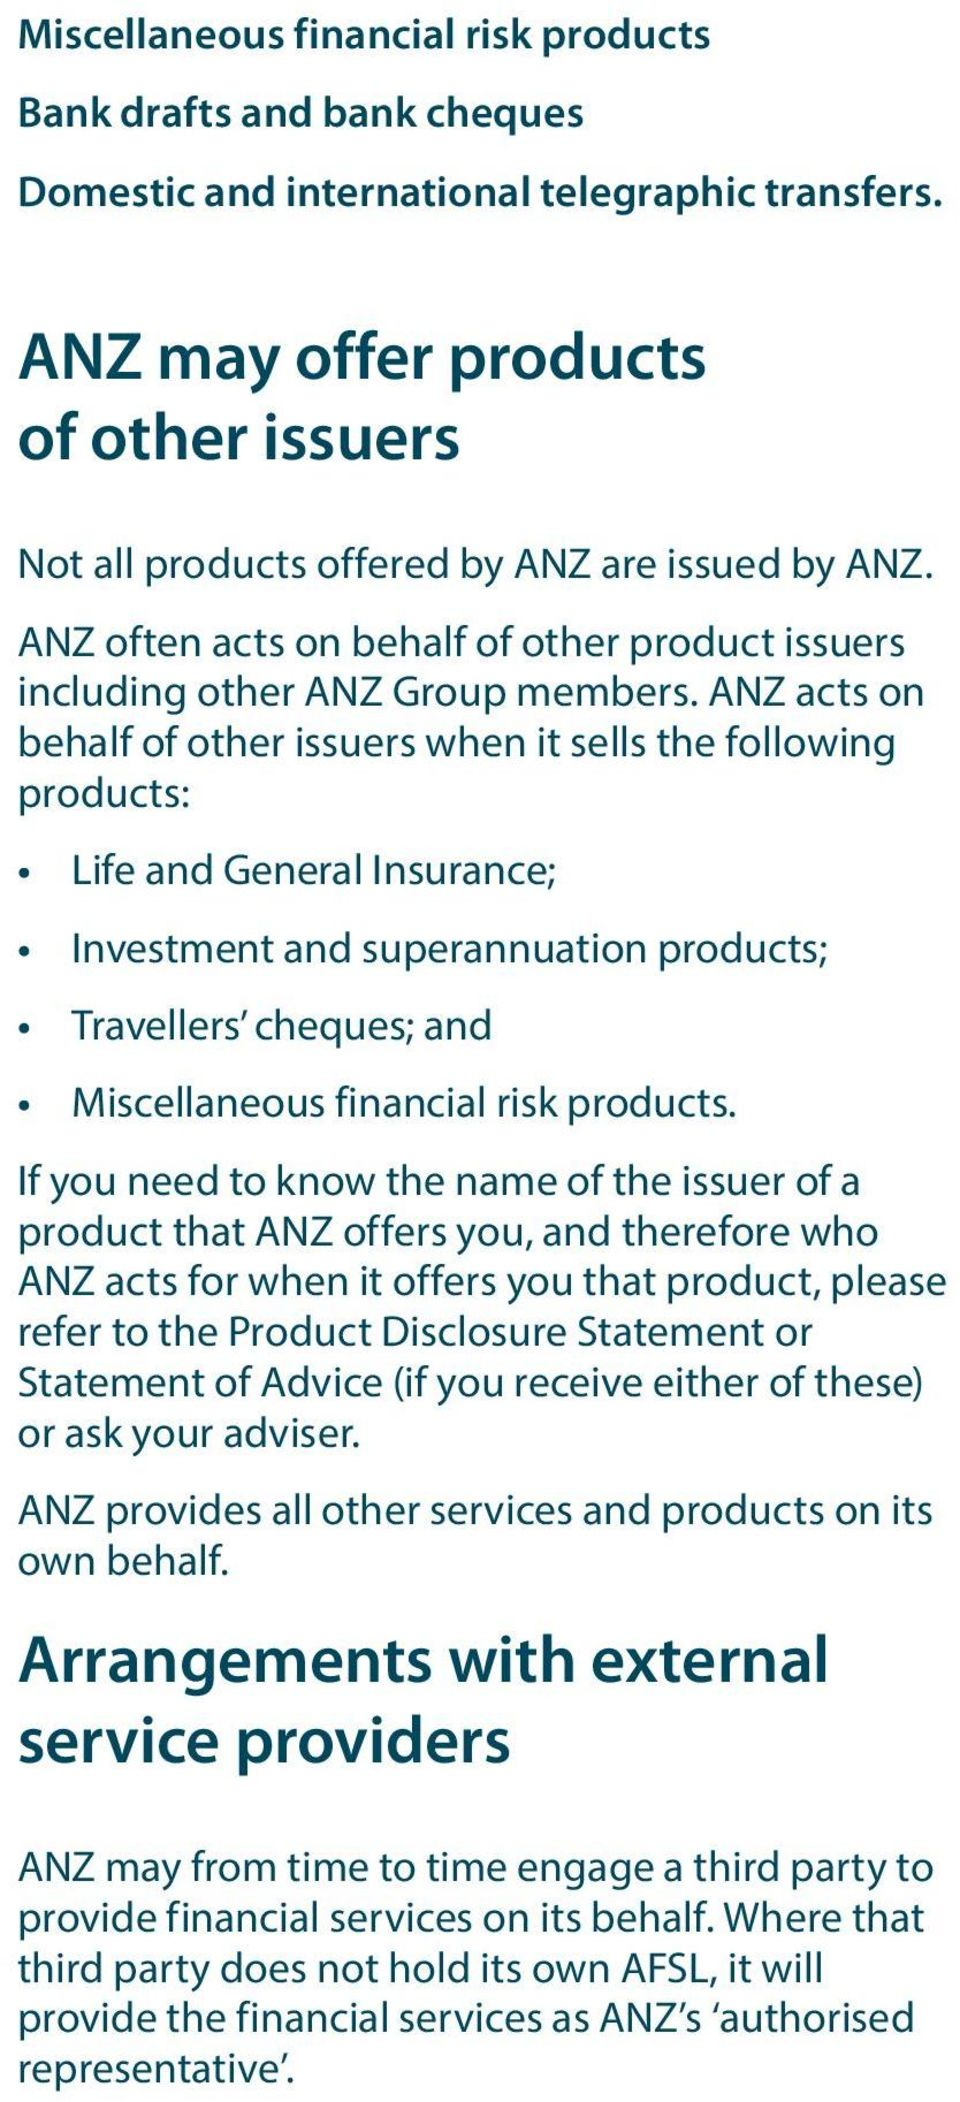 ANZ acts on behalf of other issuers when it sells the following products: Life and General Insurance; Investment and superannuation products; Travellers cheques; and Miscellaneous financial risk